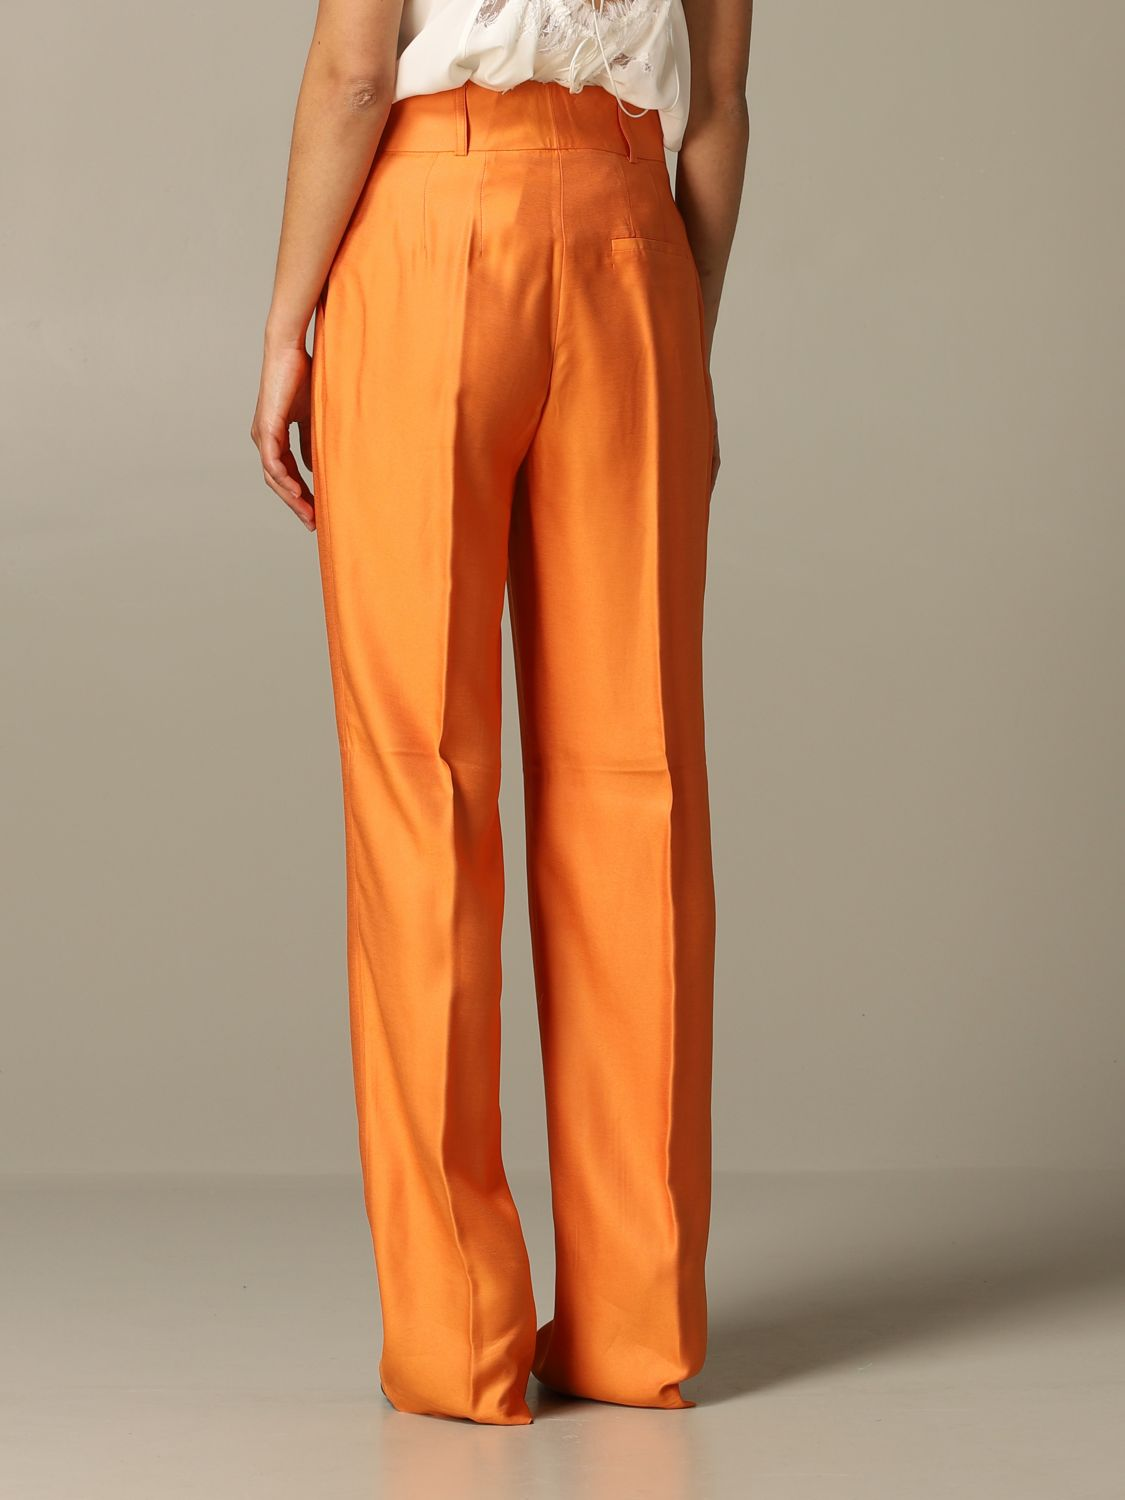 Trousers Be Blumarine: Trousers women Be Blumarine orange 2